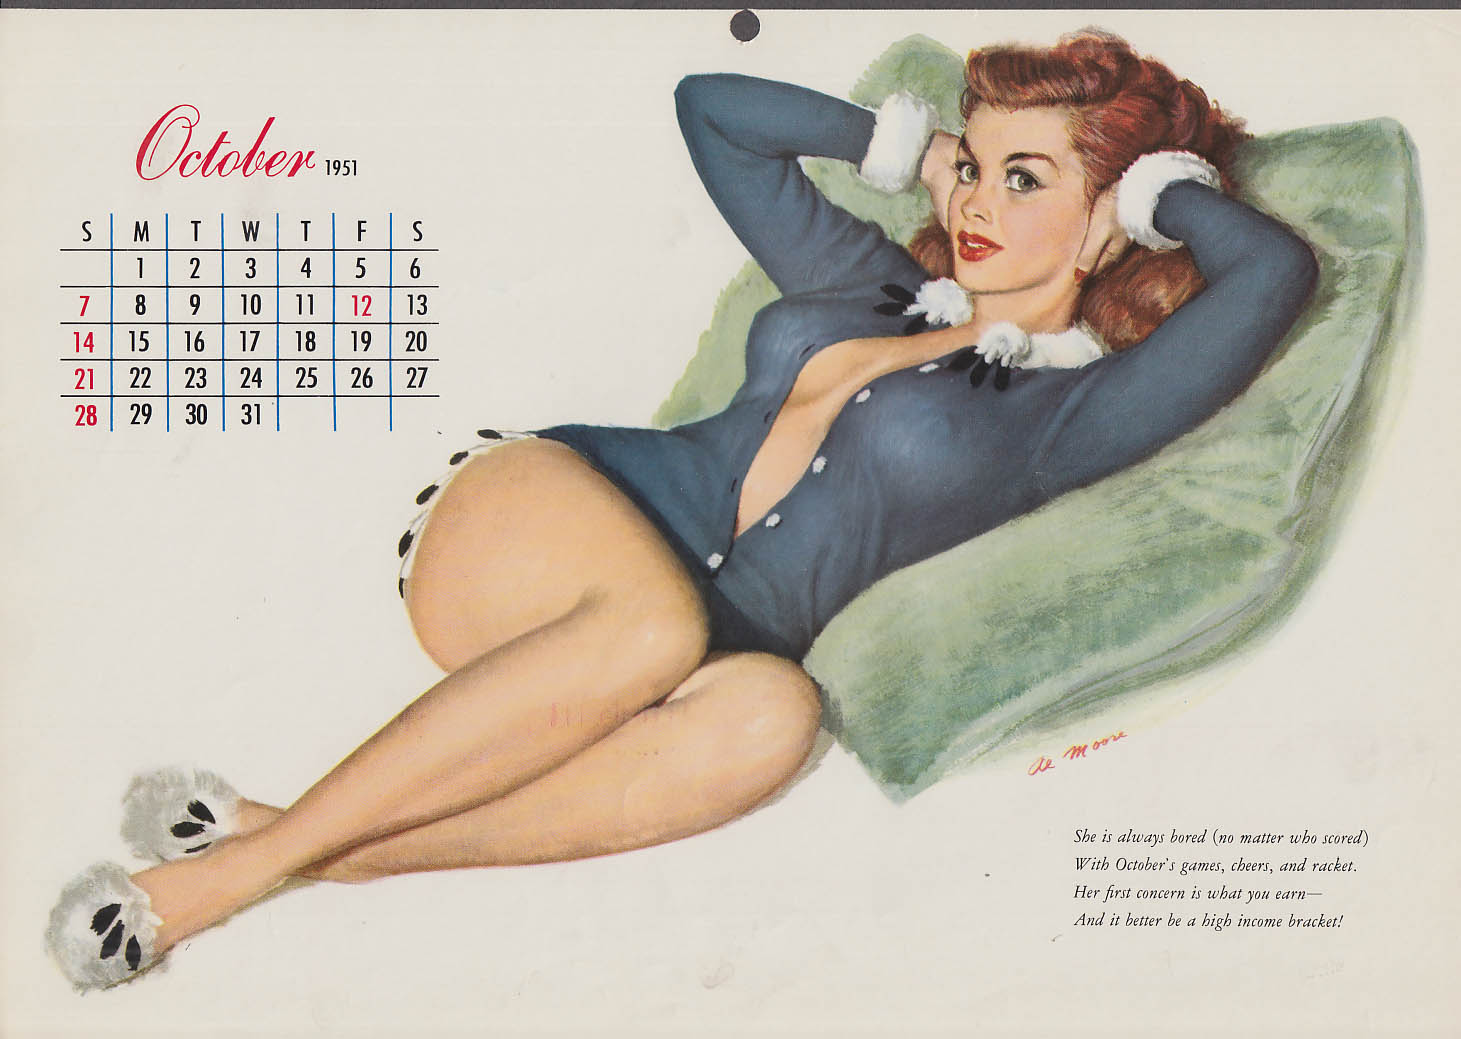 Al Moore pin-up calendar page 10 1951 redhead unbuttoned sweater on pillow